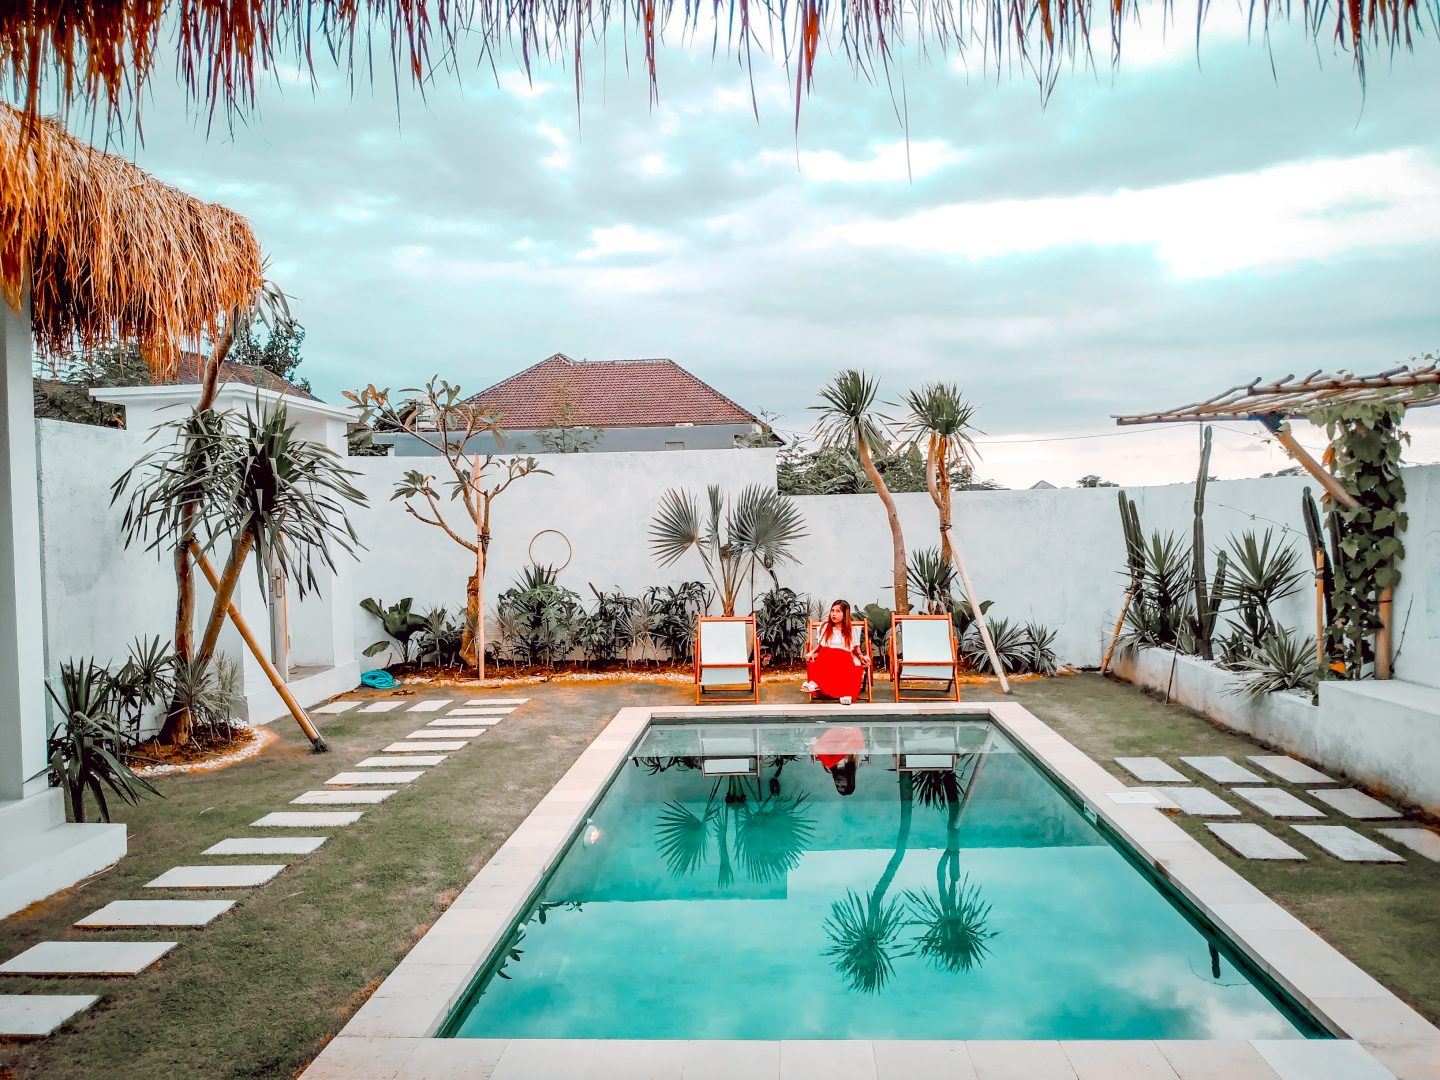 villa-palma-canggu-bali-s-hidden-oasis-you-should-stay